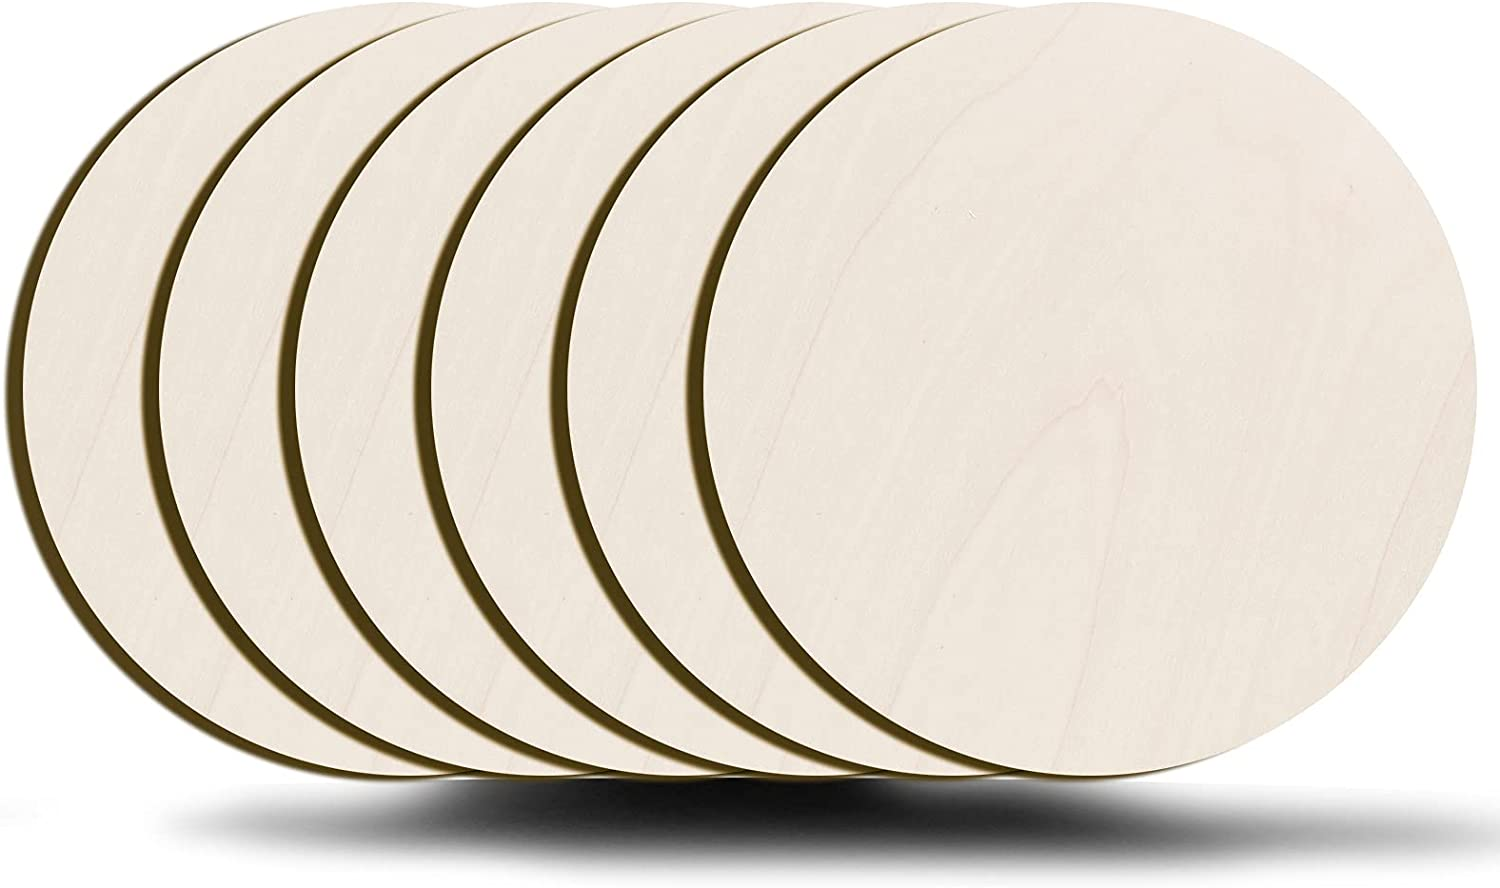 wartleves Unfinished Wood Circles for Crafts 12 Inch Ranking Max 75% OFF integrated 1st place 6 Unifo Pcs